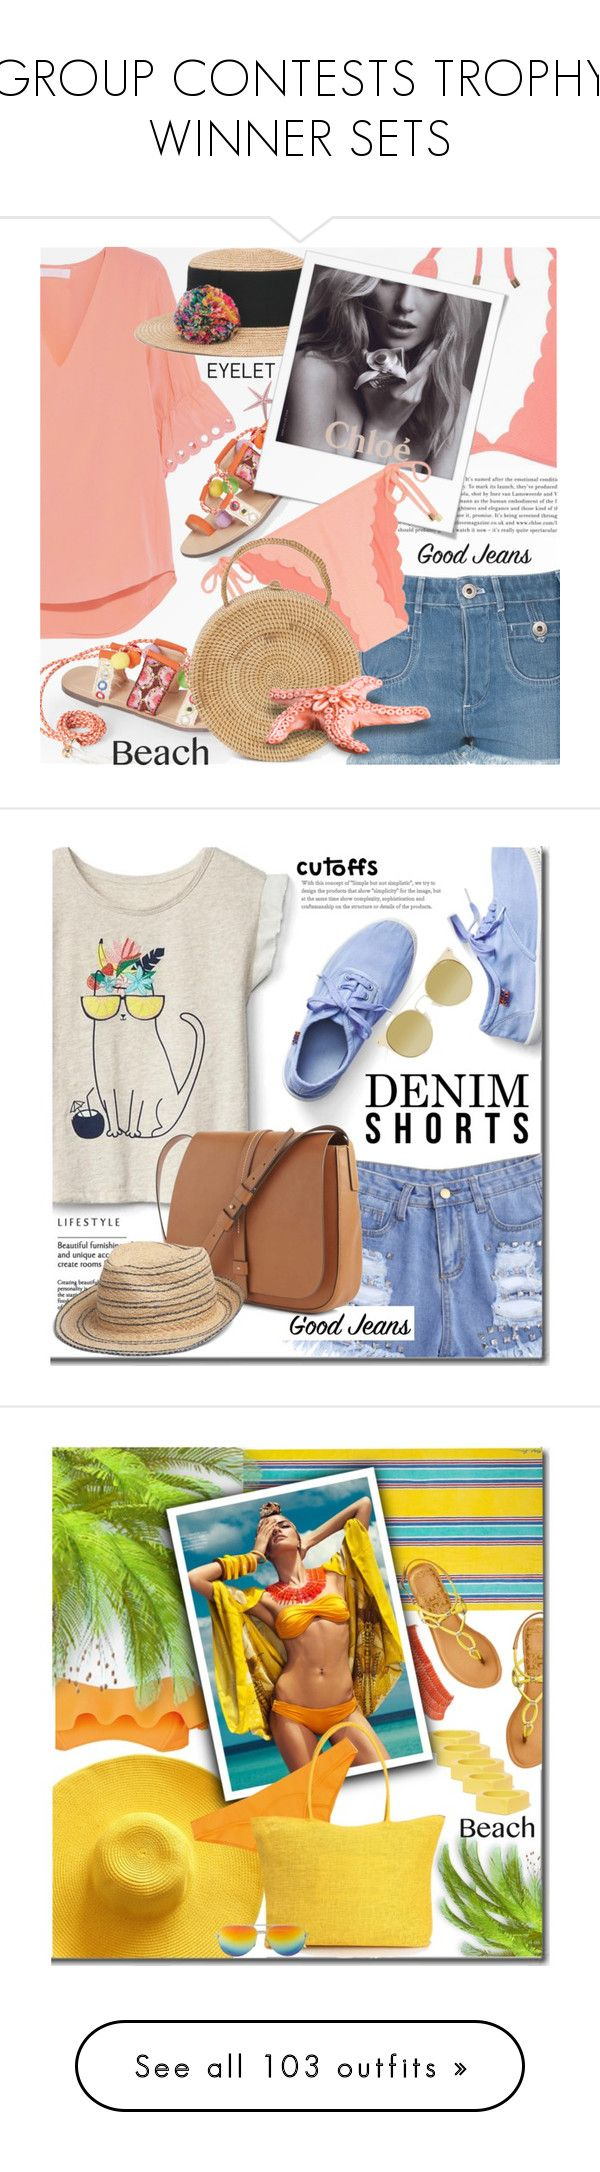 """""""GROUP CONTESTS TROPHY WINNER SETS"""" by shoaleh-nia ❤ liked on Polyvore featuring Chloé, Heidi Klein, Eugenia Kim, Chase & Chloe, Gap, Quay, Lisa Marie Fernandez, Ralph Lauren Home, Marni and Dolce Vita"""